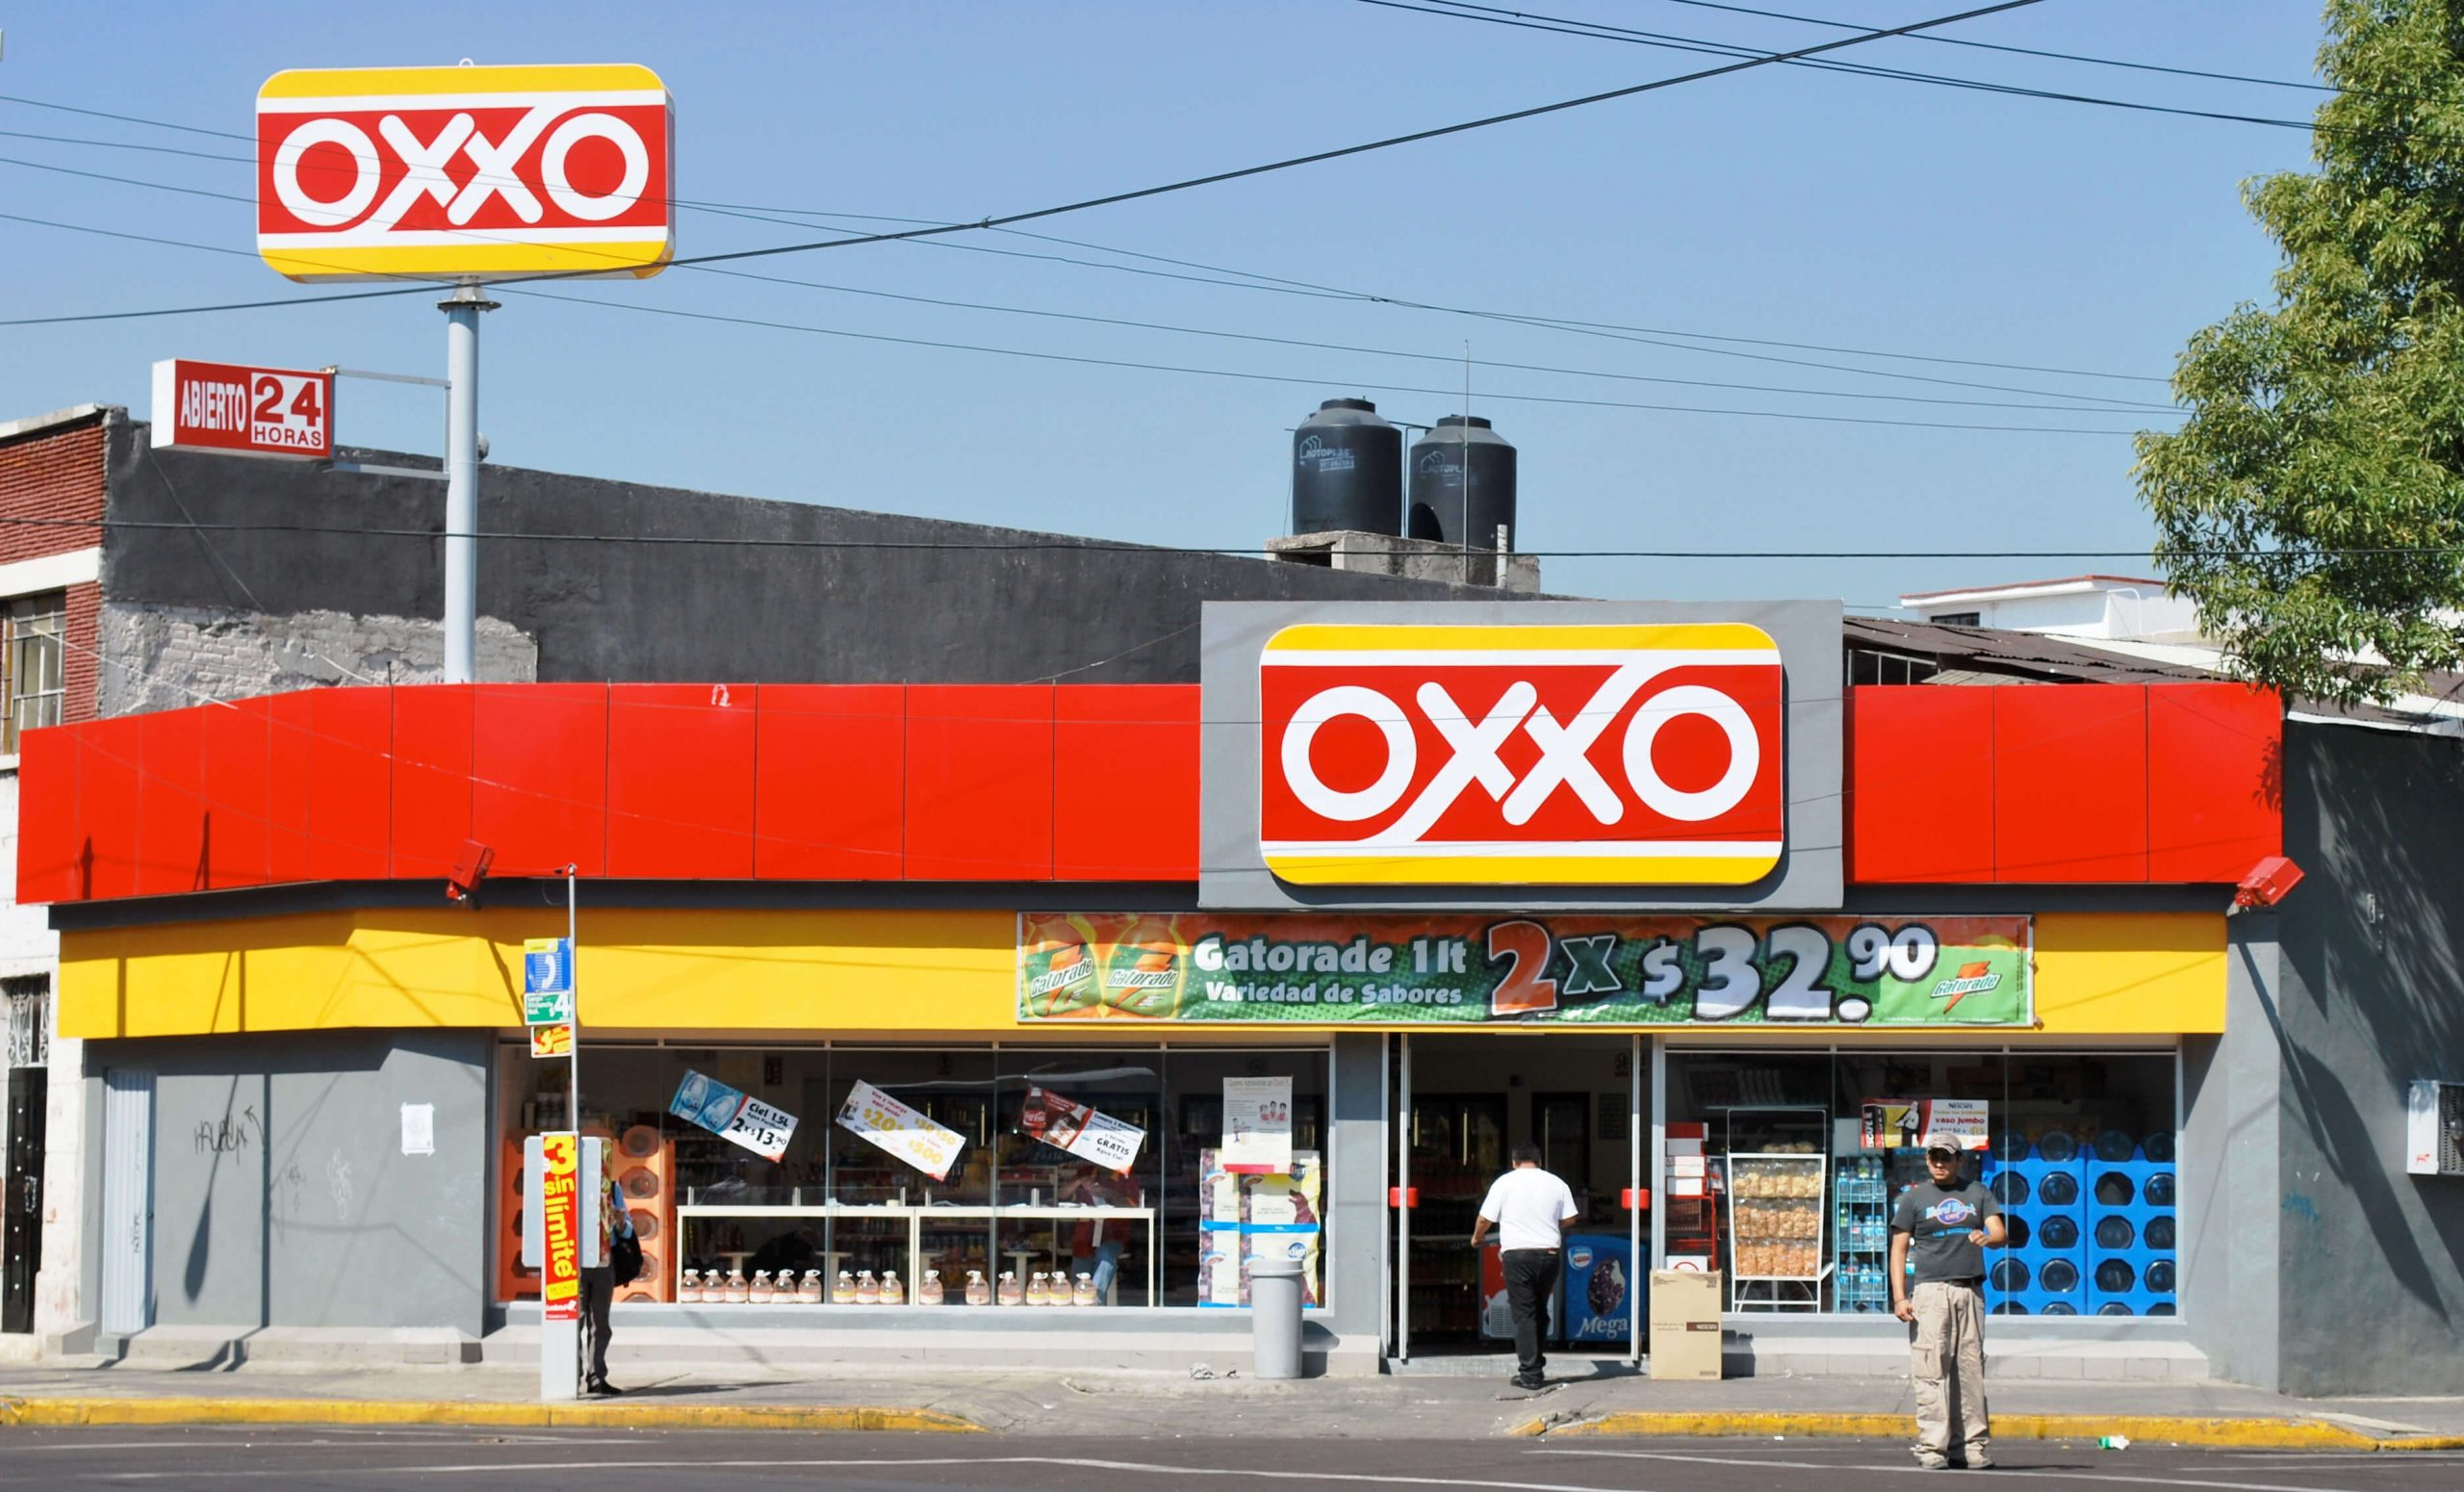 Convenience stores like this Oxxo in Mexico City may only have two weeks of beer inventory left.